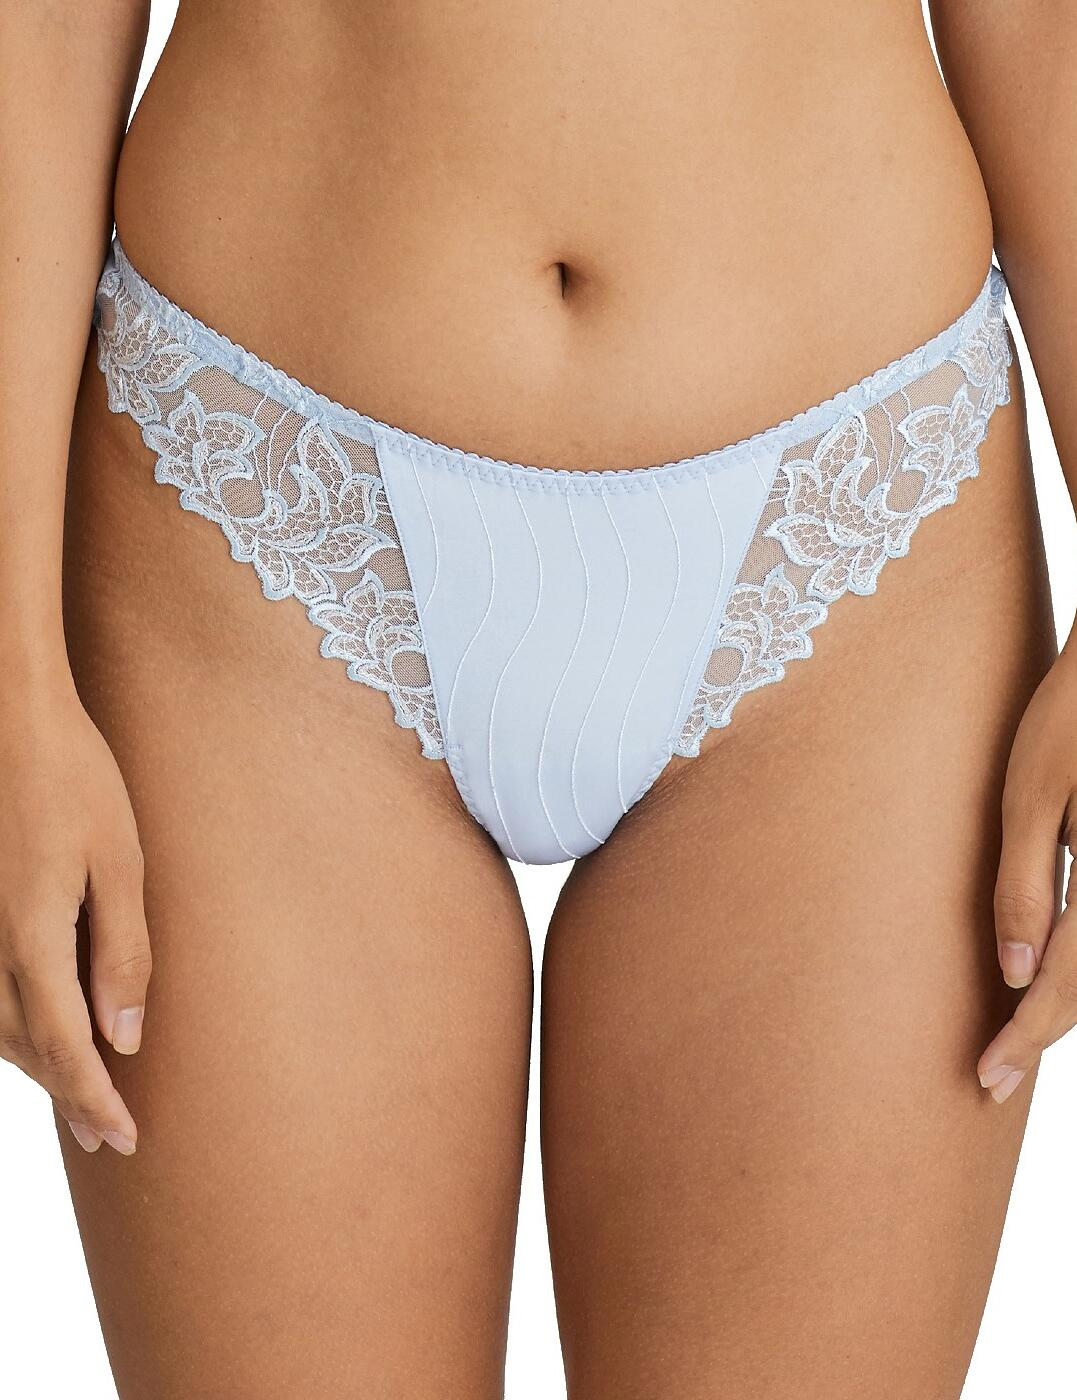 0661810 Prima Donna Deauville Thong - 0661810 Heather Blue